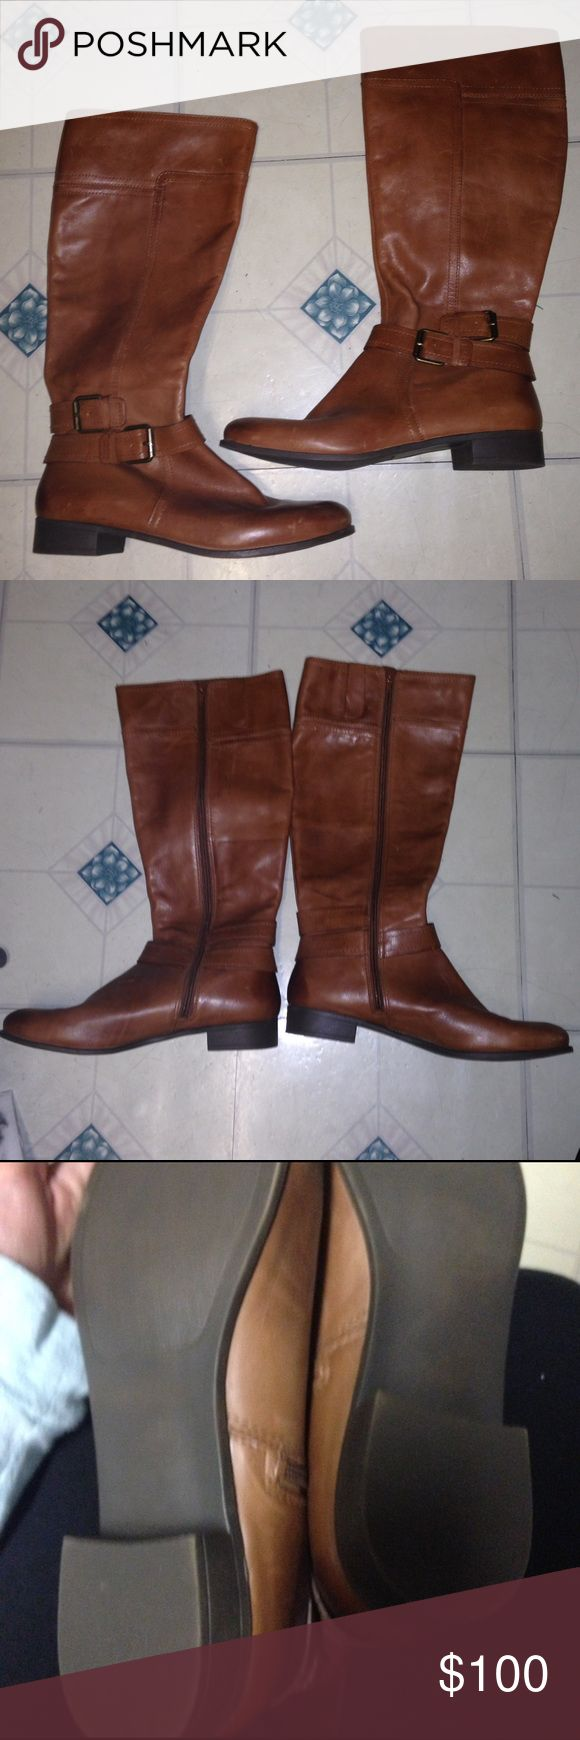 Nine West brown riding boots never worn size 10 Leather upper. Brown riding boots from the vintage America collection. Never worn. There are some light scratches on these boots (see last photo for an idea). Otherwise great condition. Nine West Shoes Combat & Moto Boots